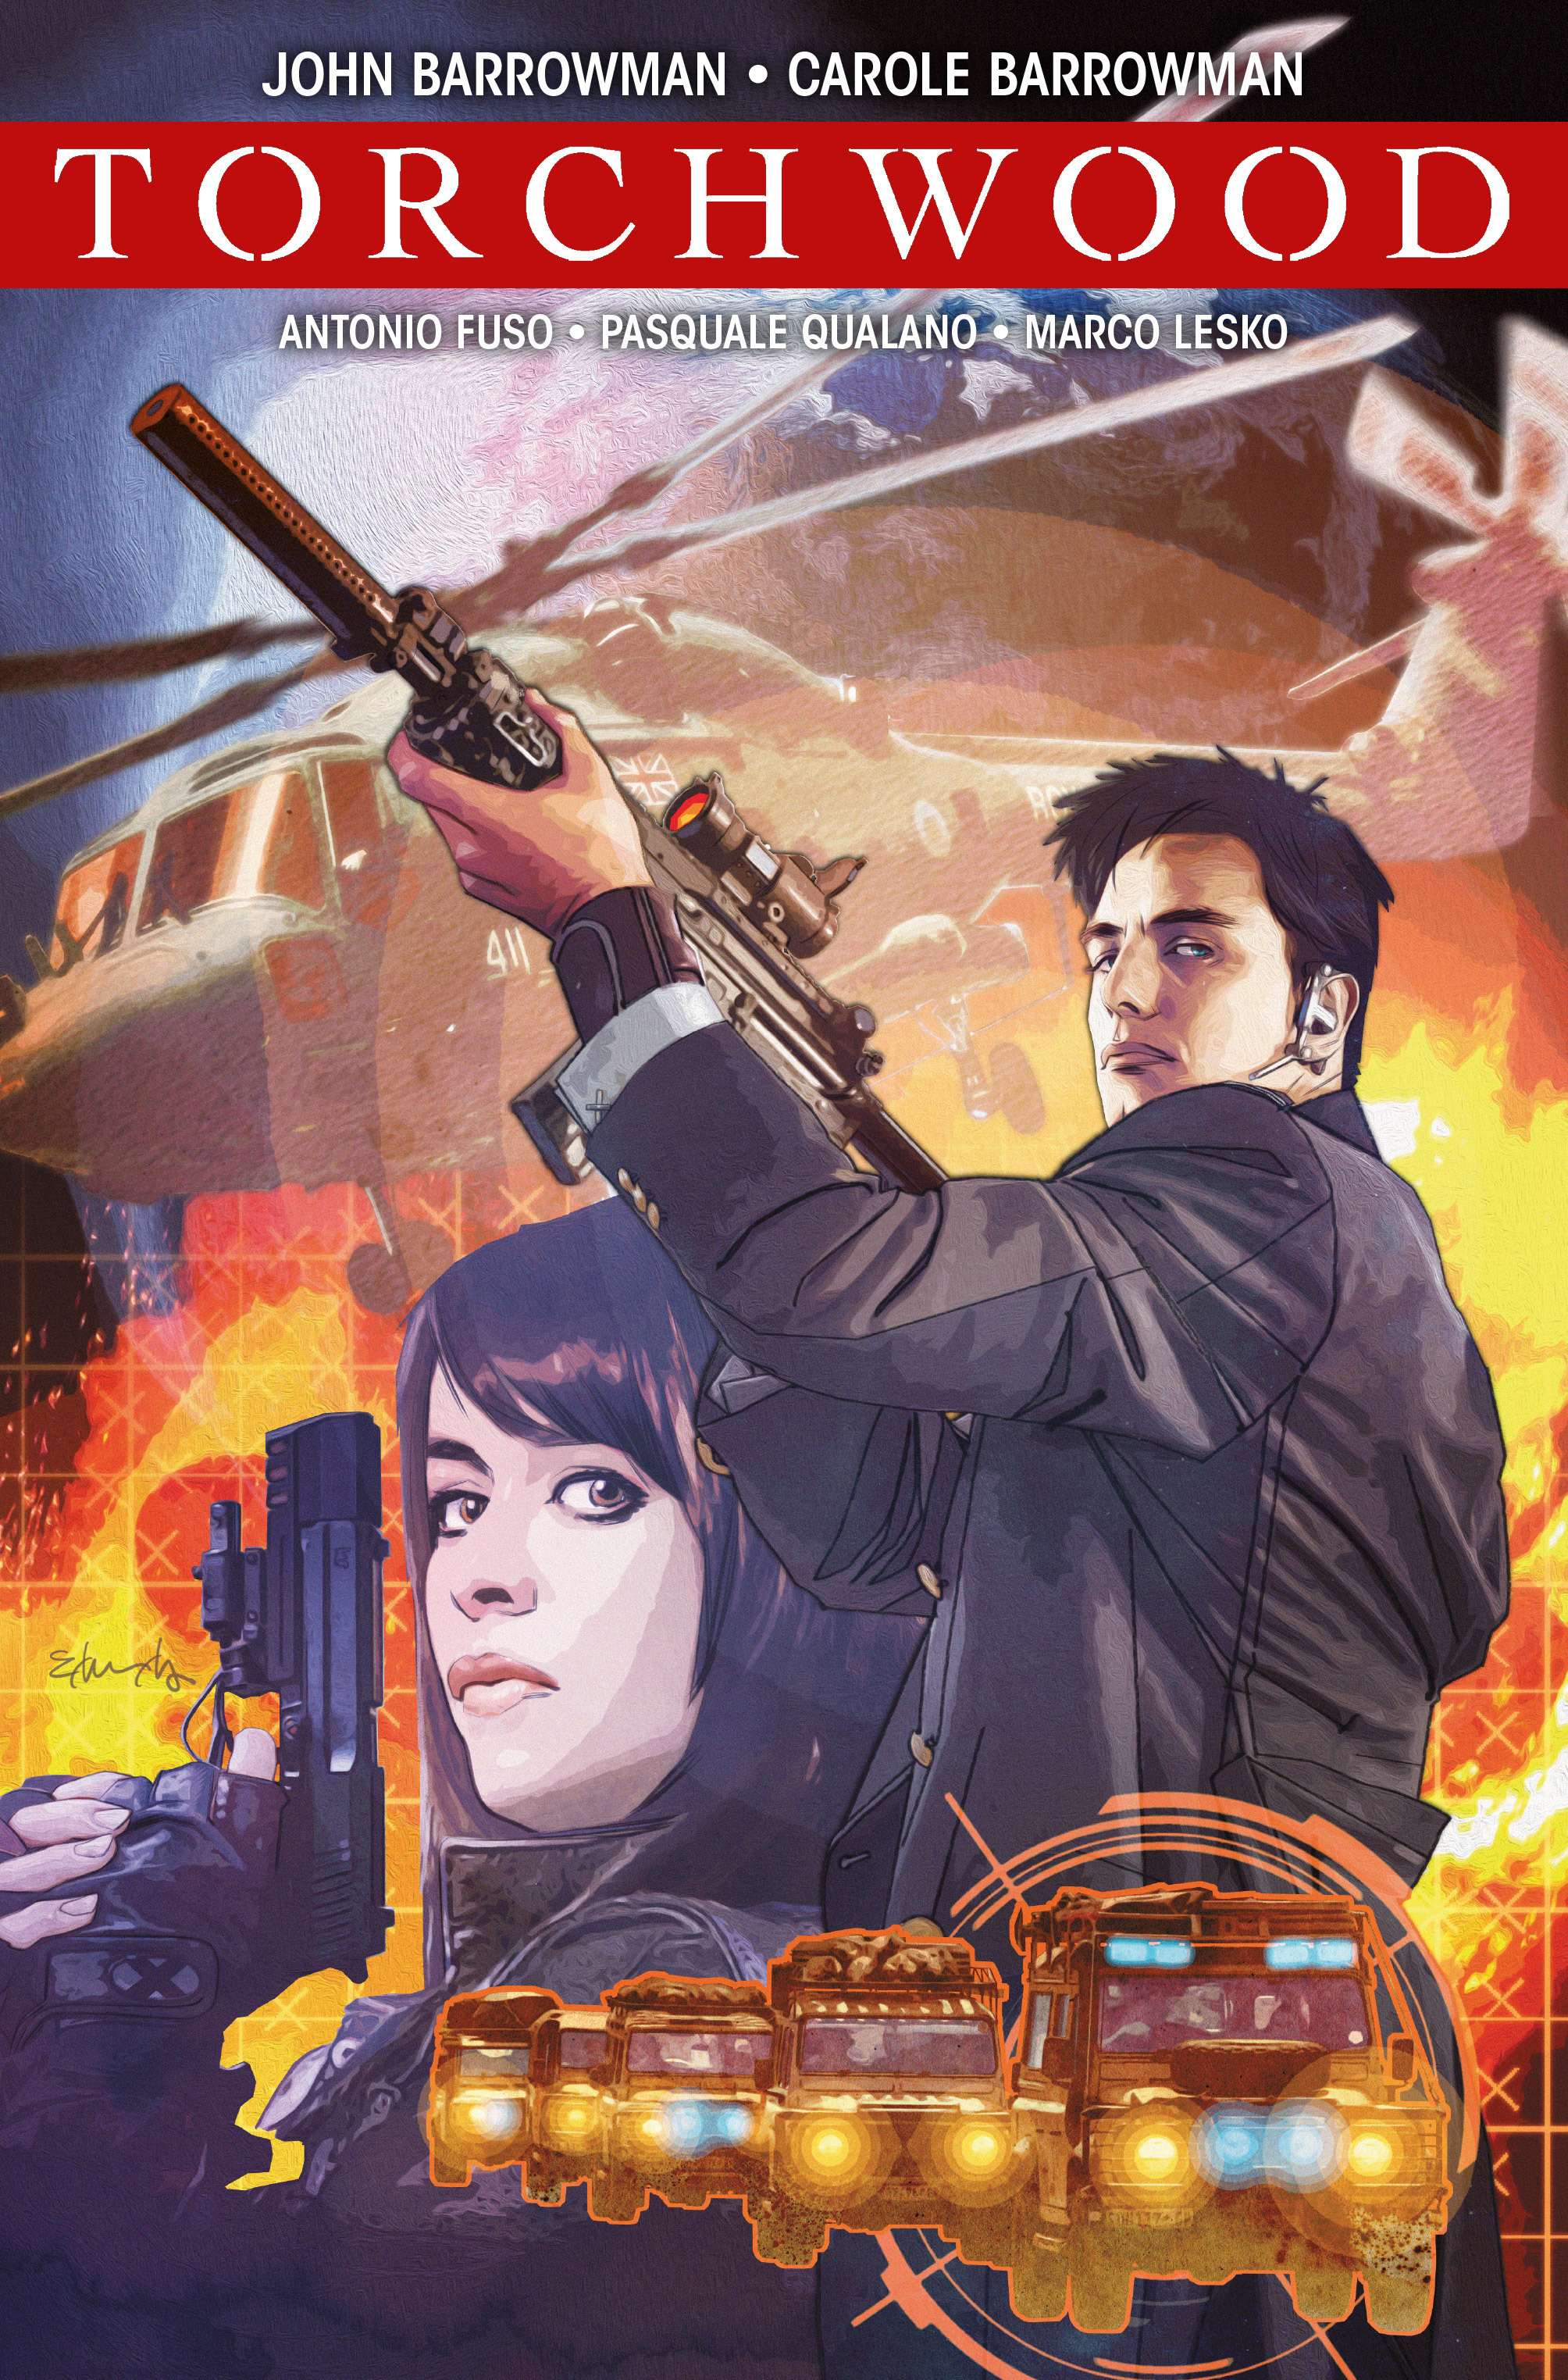 Torchwood #1